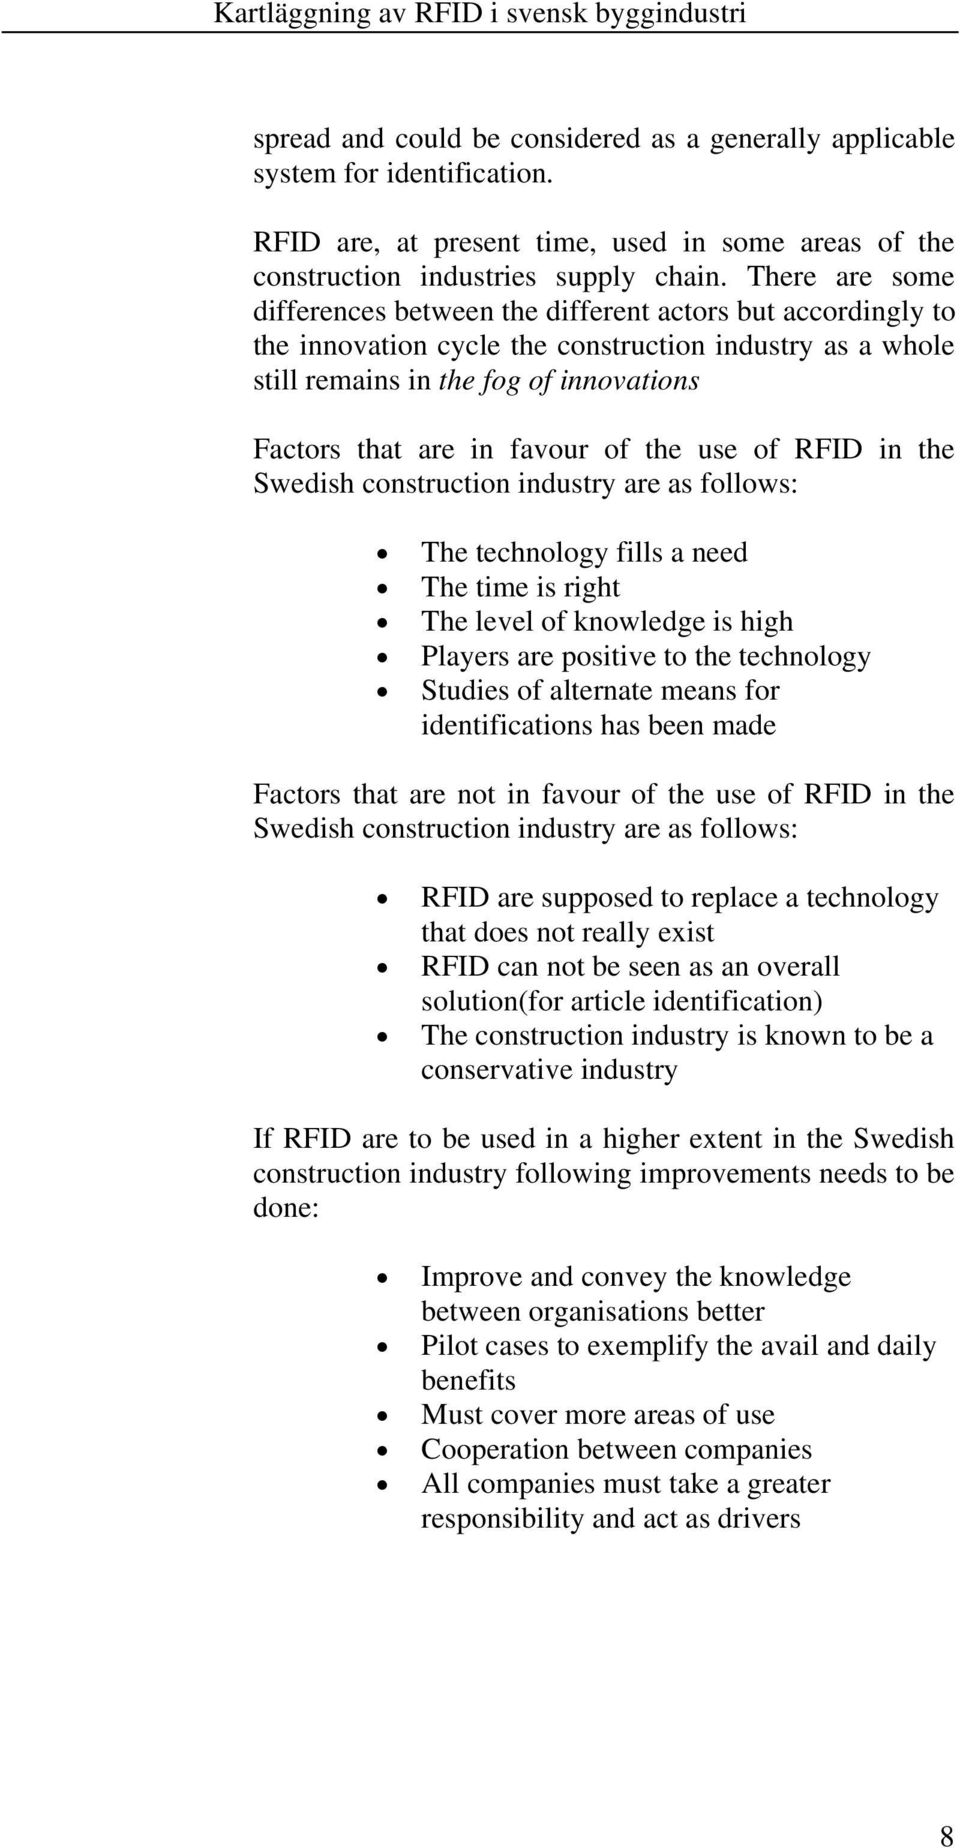 of the use of RFID in the Swedish construction industry are as follows: The technology fills a need The time is right The level of knowledge is high Players are positive to the technology Studies of